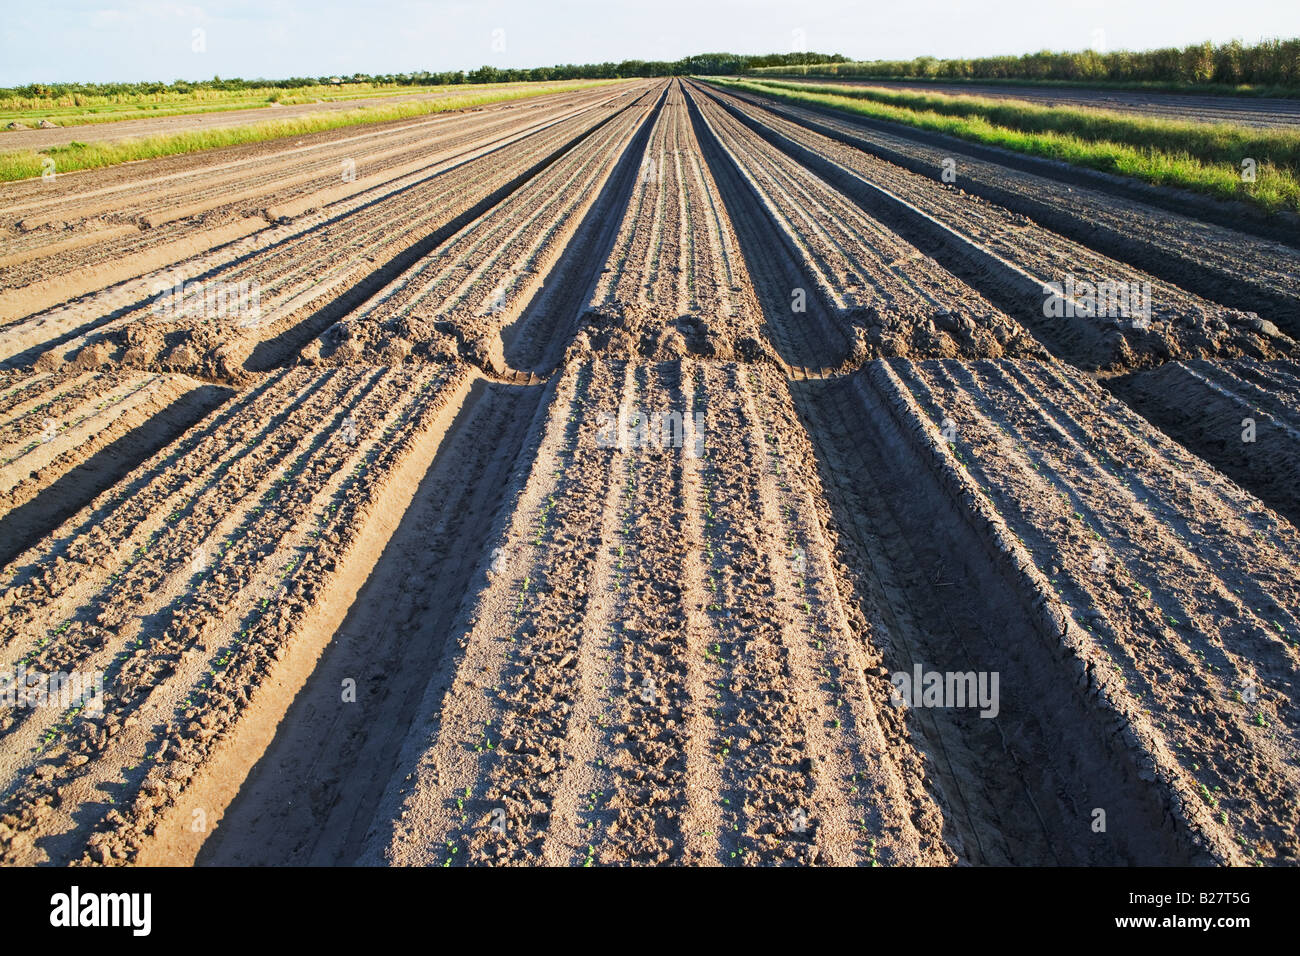 Rows in field, Florida, United States - Stock Image